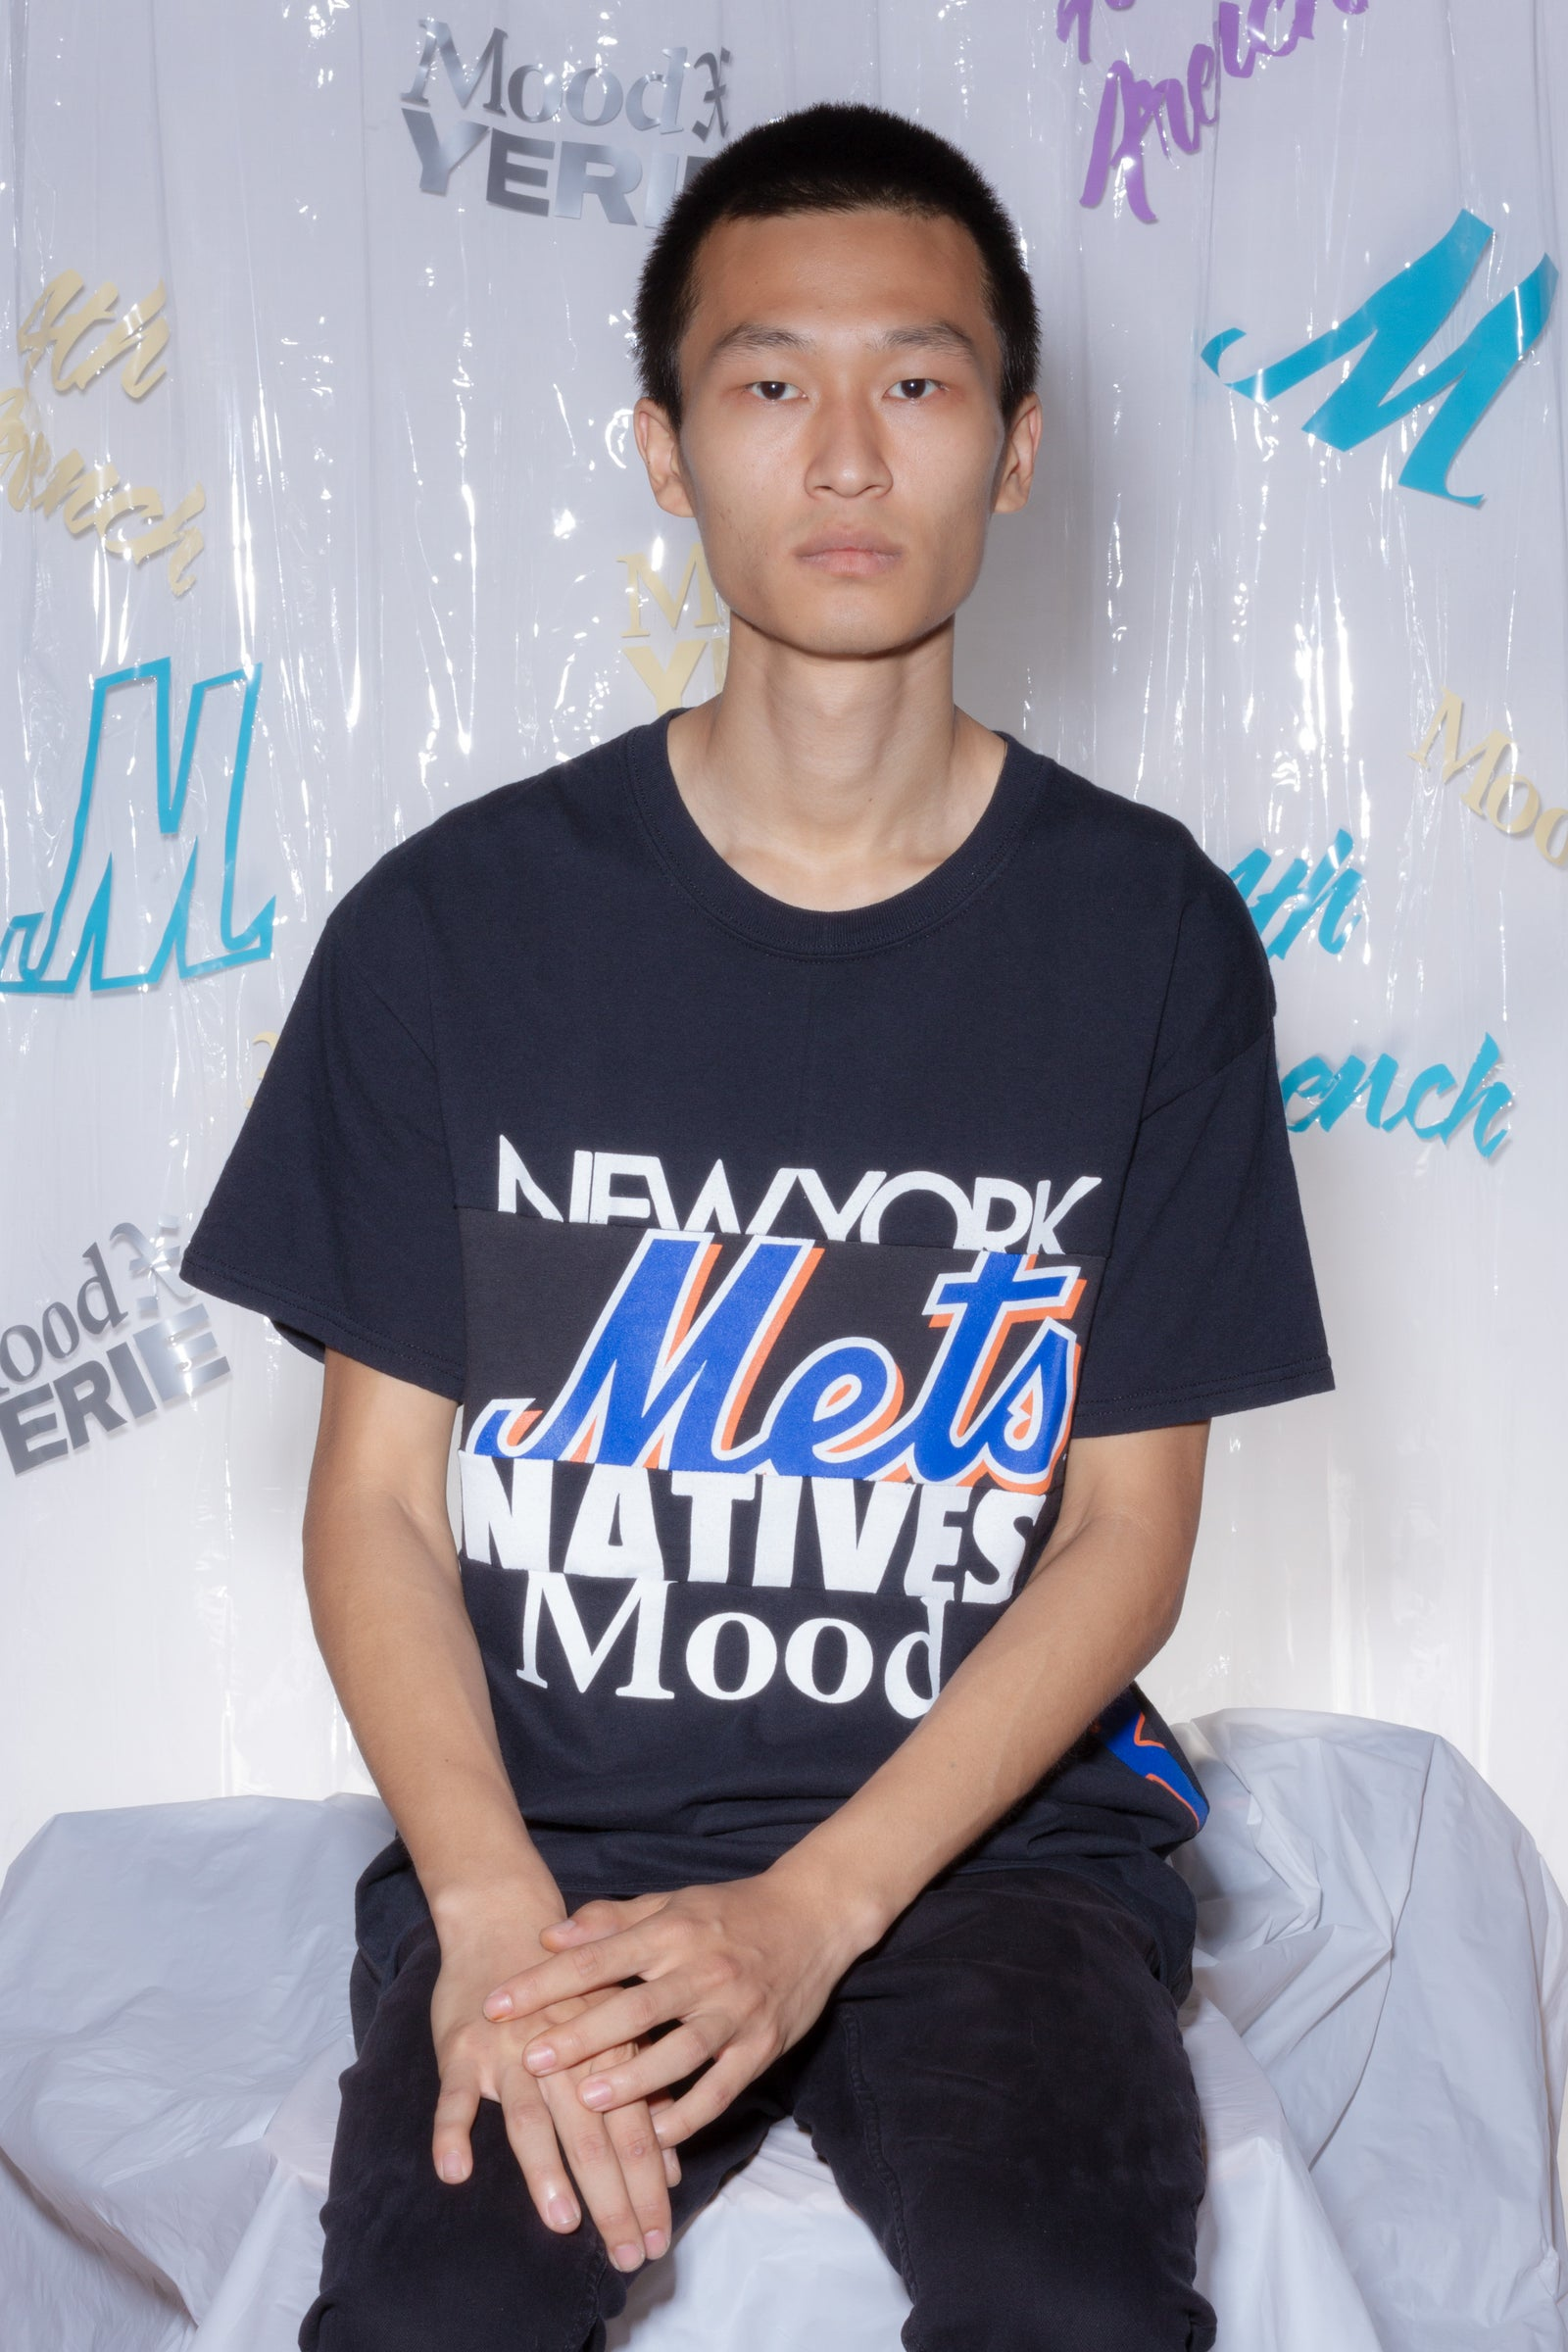 New York Mets Native Tee, Mood X Yerie